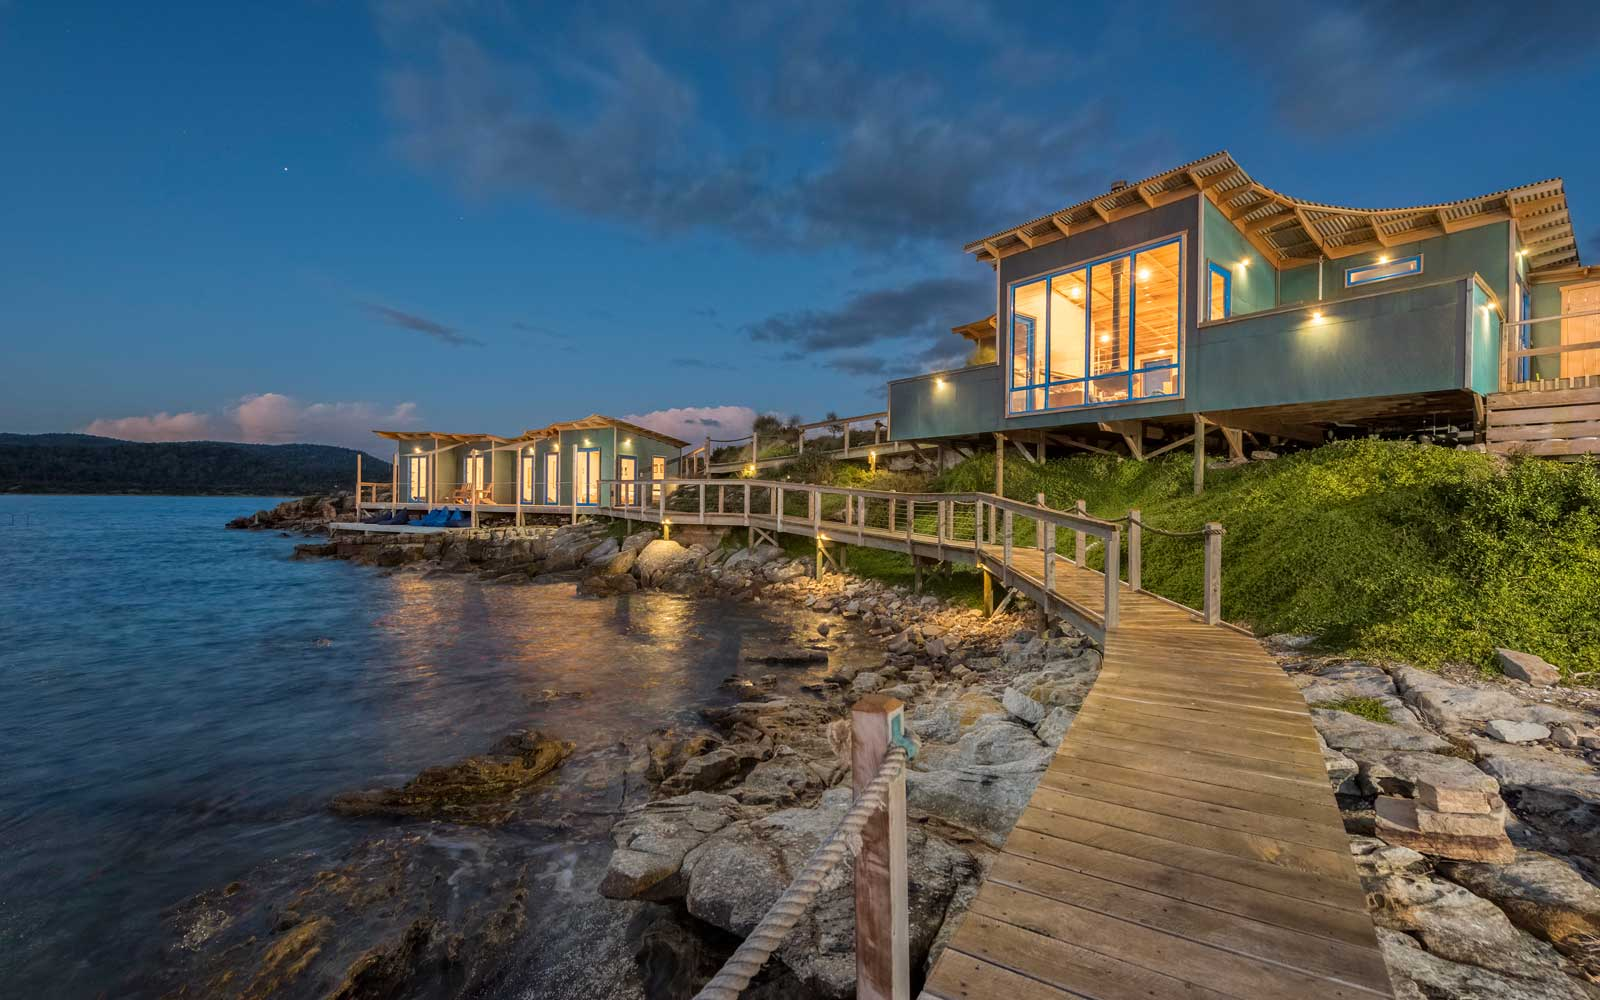 Get 34% off Stays on Your Own Private Island in Tasmania